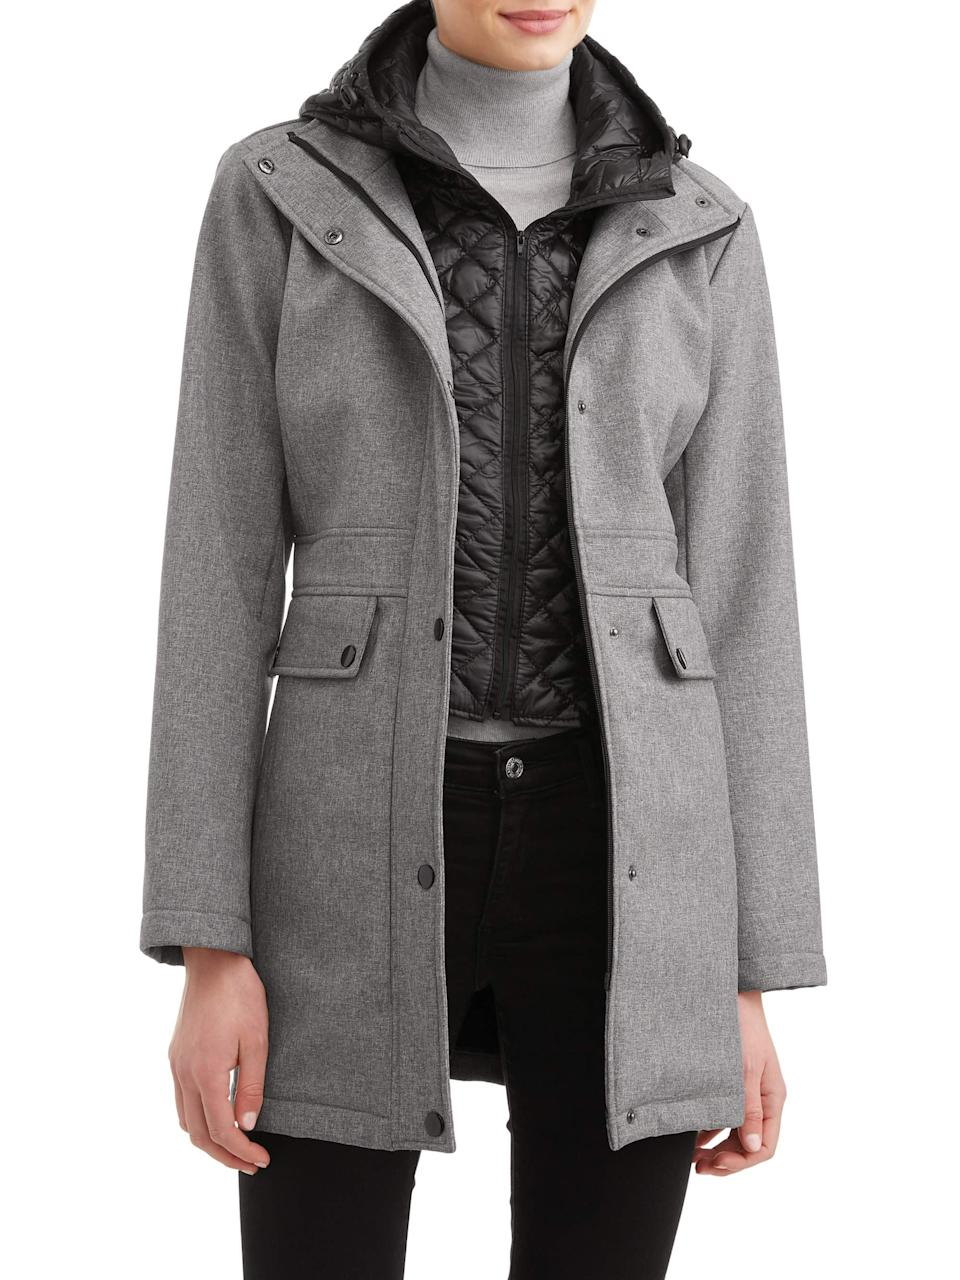 Women's Soft Shell A-Line with Quilted Cire Vestee & Hood (Photo: Walmart)